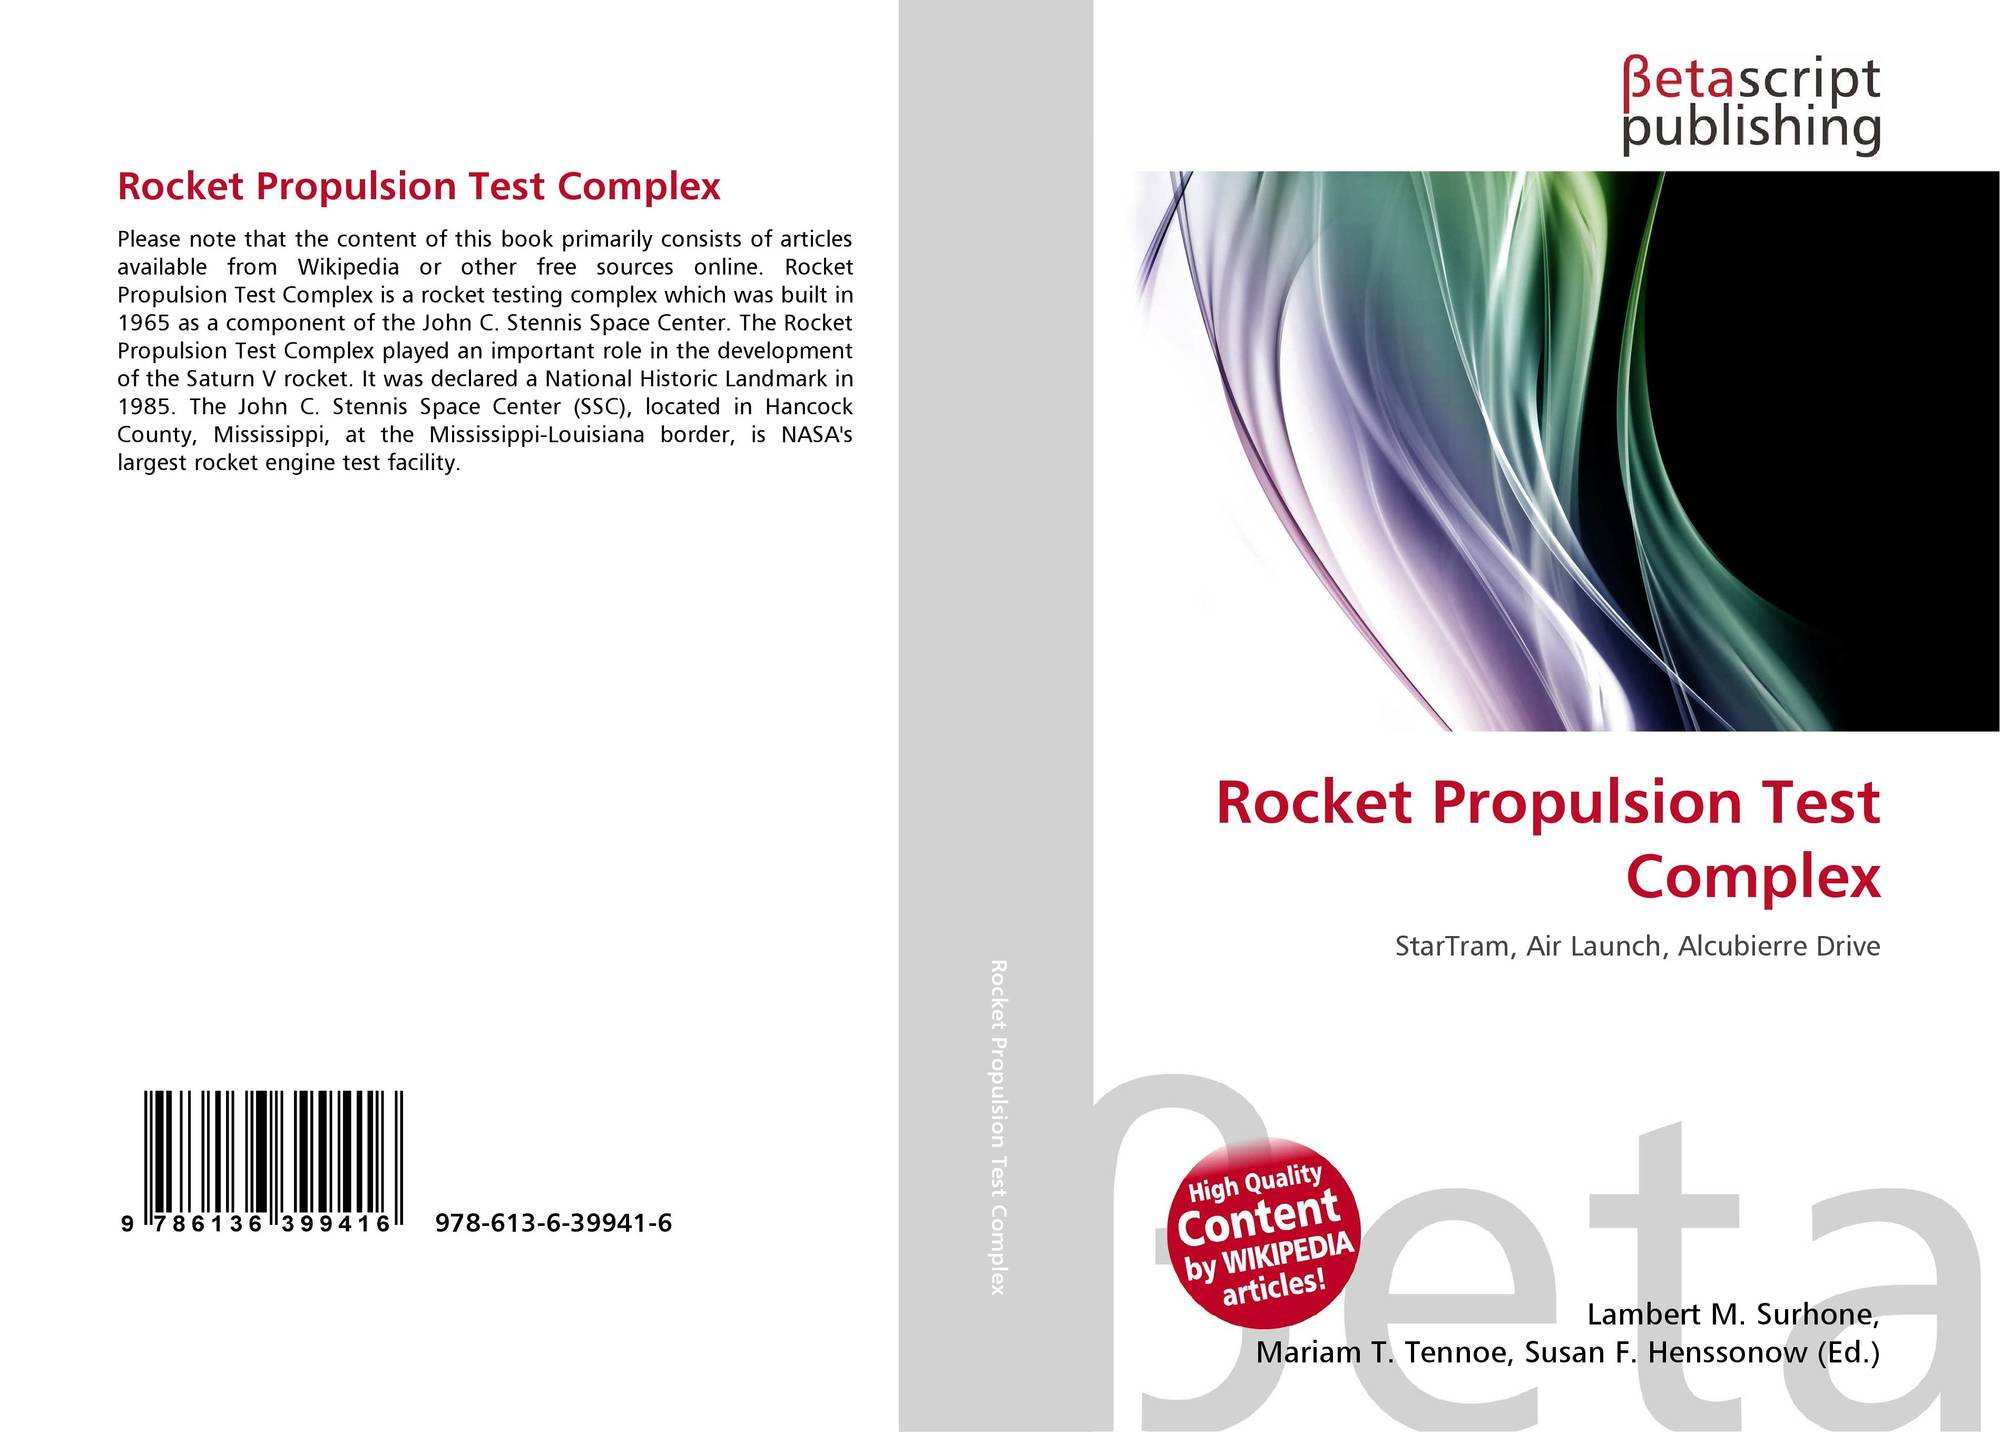 rocket propulsion Rocket propulsion elements [george p sutton, oscar biblarz] on amazoncom free shipping on qualifying offers the definitive introduction to rocket propulsion theory and applications the recent upsurge in global government and private spending and in space flight events has resulted in many novel applications of rocket propulsion technology.